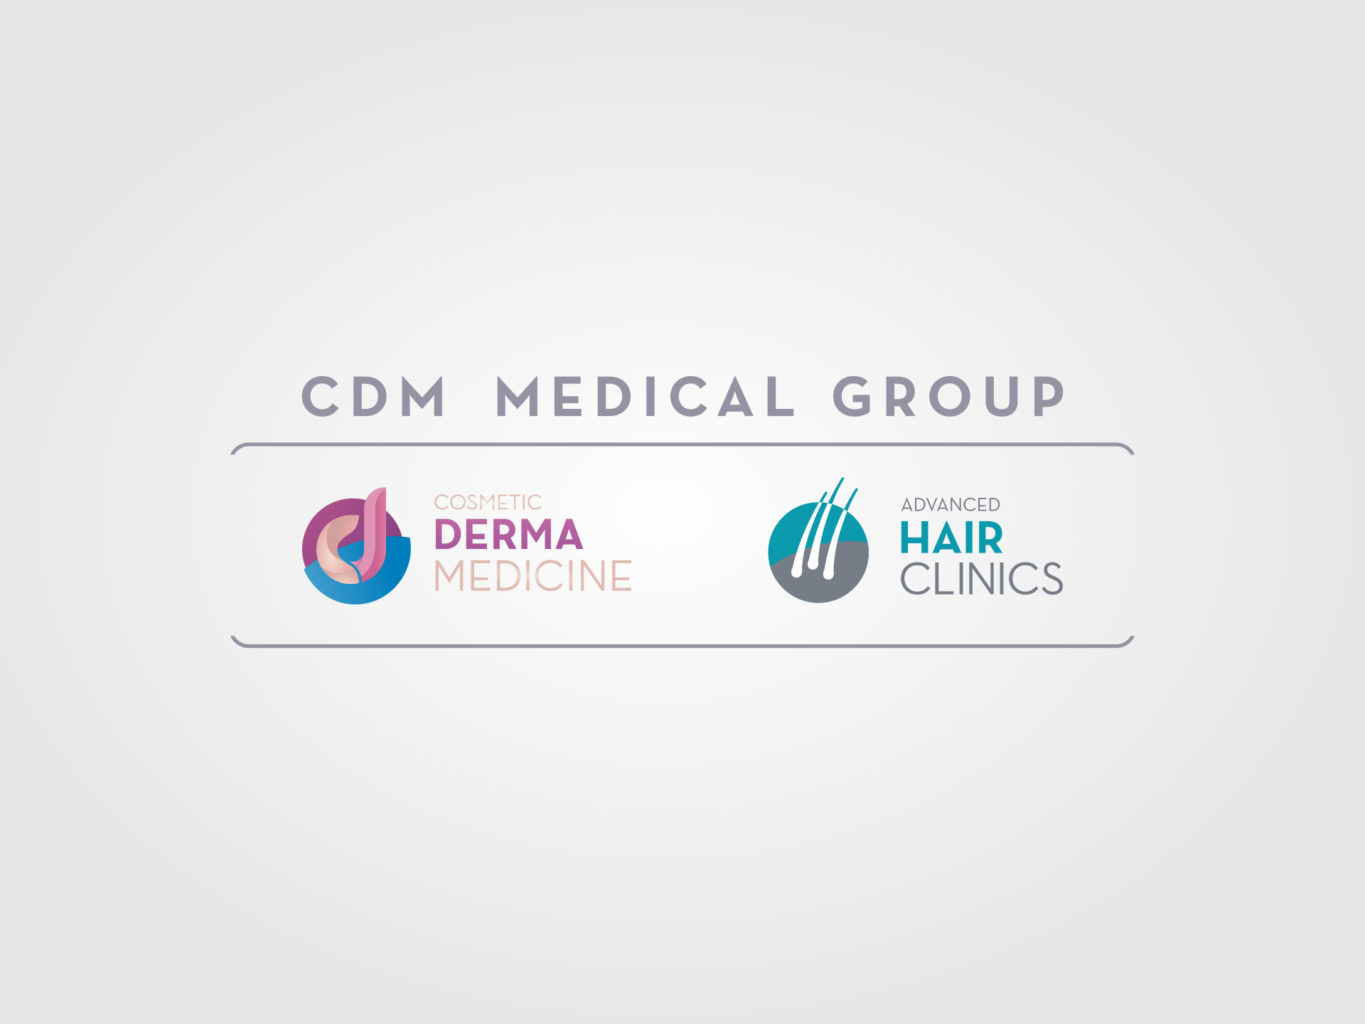 advanced derma medicine and advanced hair clinics logos for cdm medical group by fiftyeggz